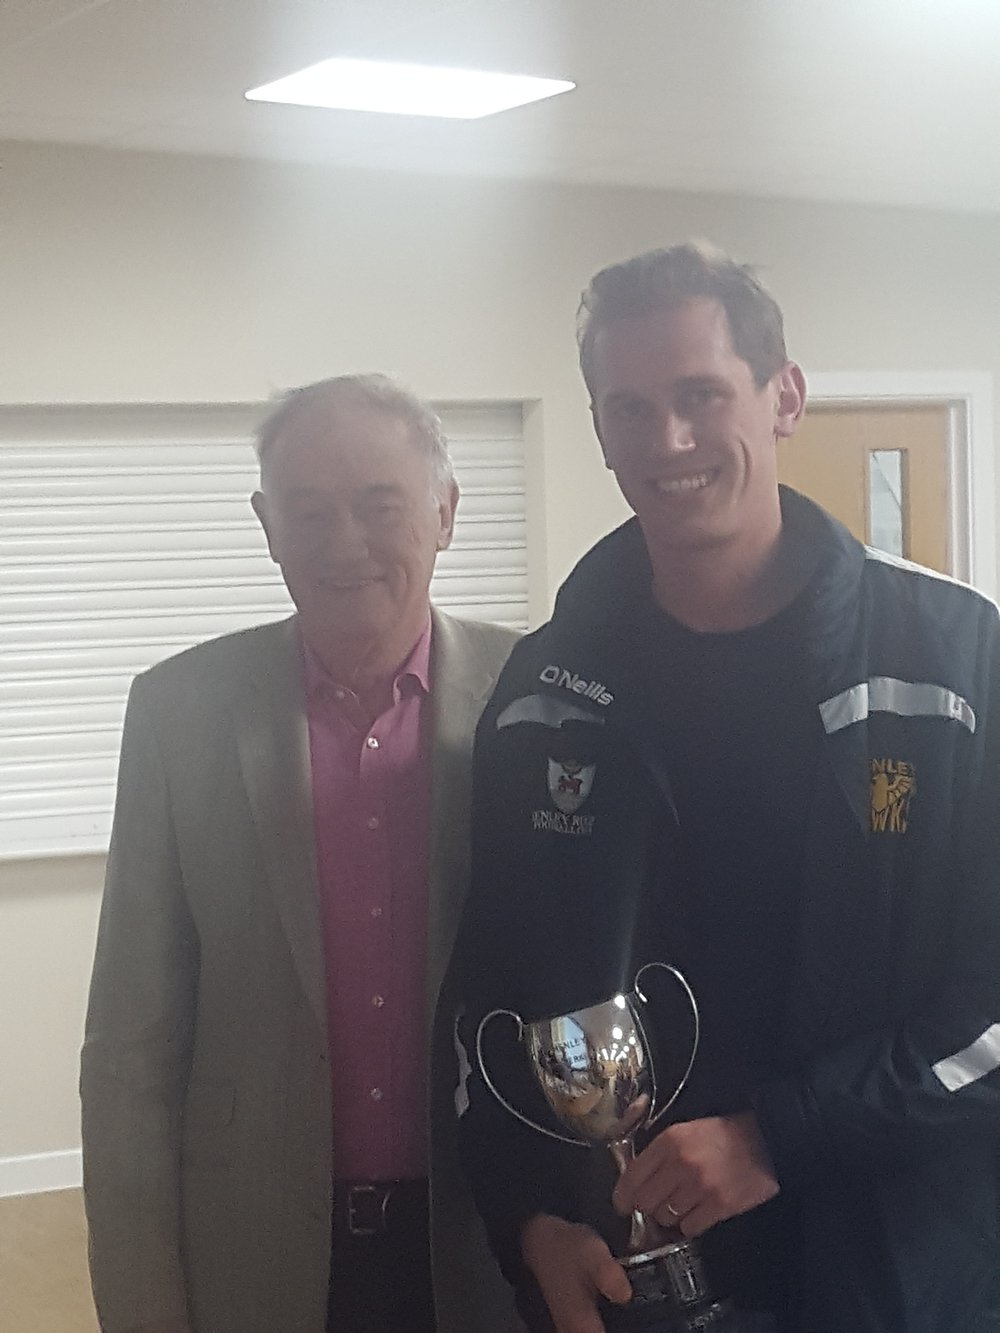 Chris Parrott - Team Manager of the Henley Vikings being presented with Clubman of the Year from Mike Trethewey